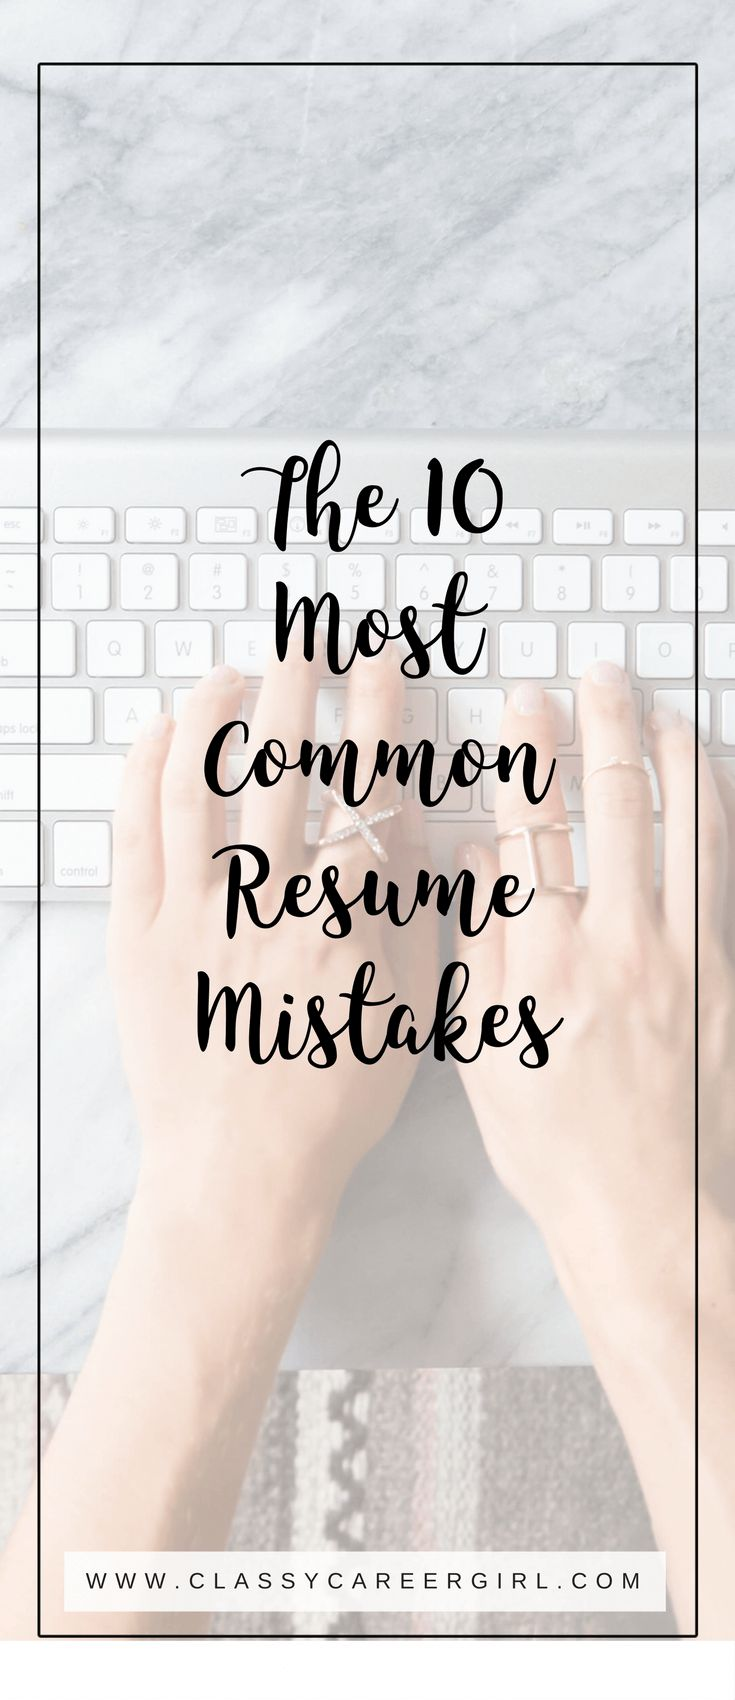 I know resumes are boring and they are the last thing that you want to work on with your free time. But, trust me...you need to. Over the last week I reviewed over 20 resumes of the students in my career development class. I saw the same mistakes over and over again so I wanted to share with you the most common resume mistakes that I see so that you DON'T make them.